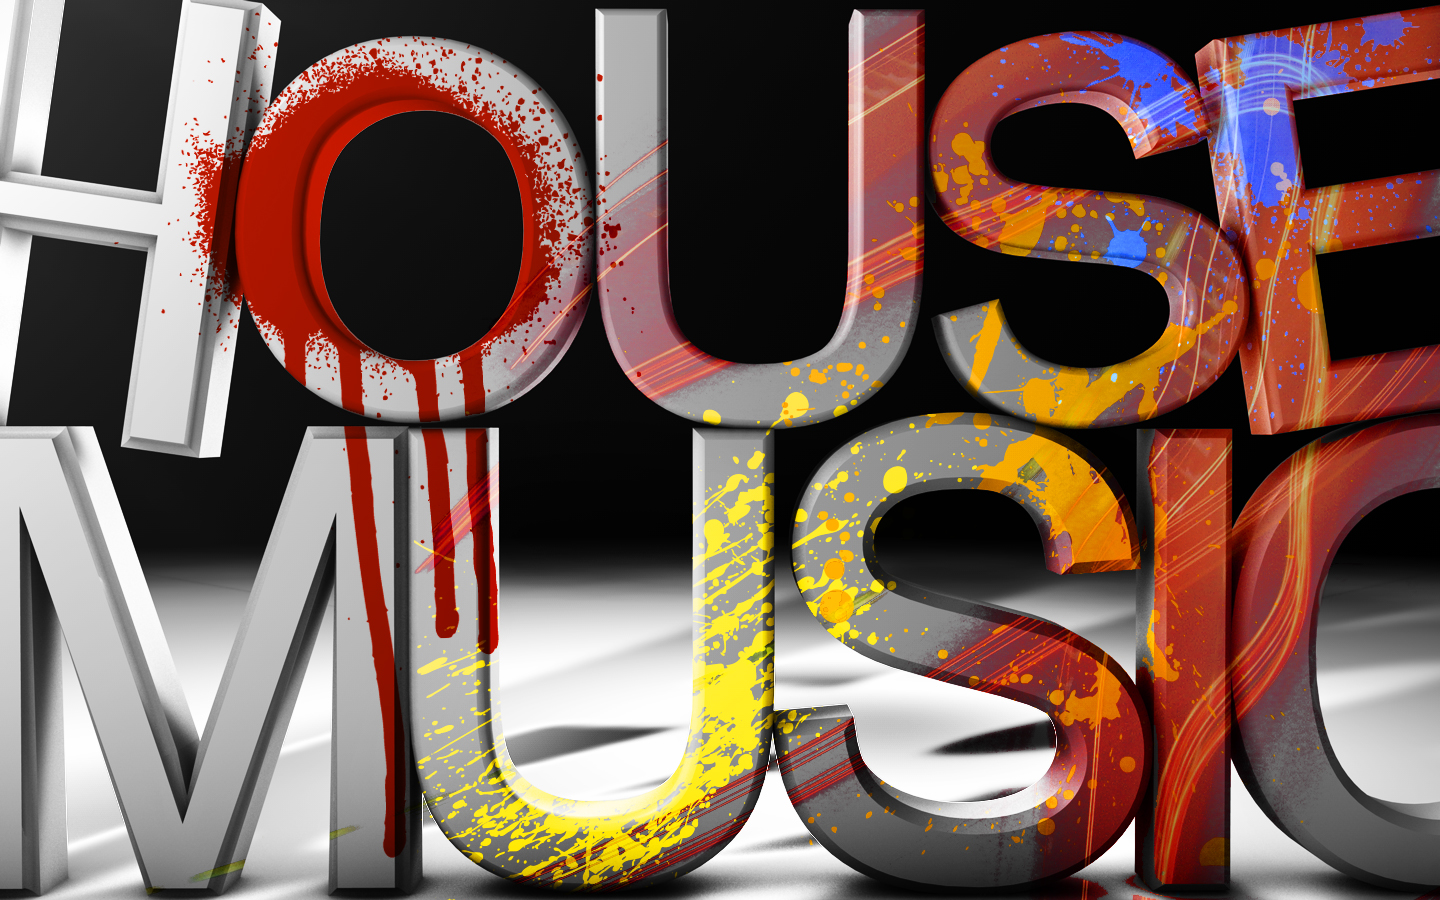 House music dj wallpaper wallpapersafari for House music facts